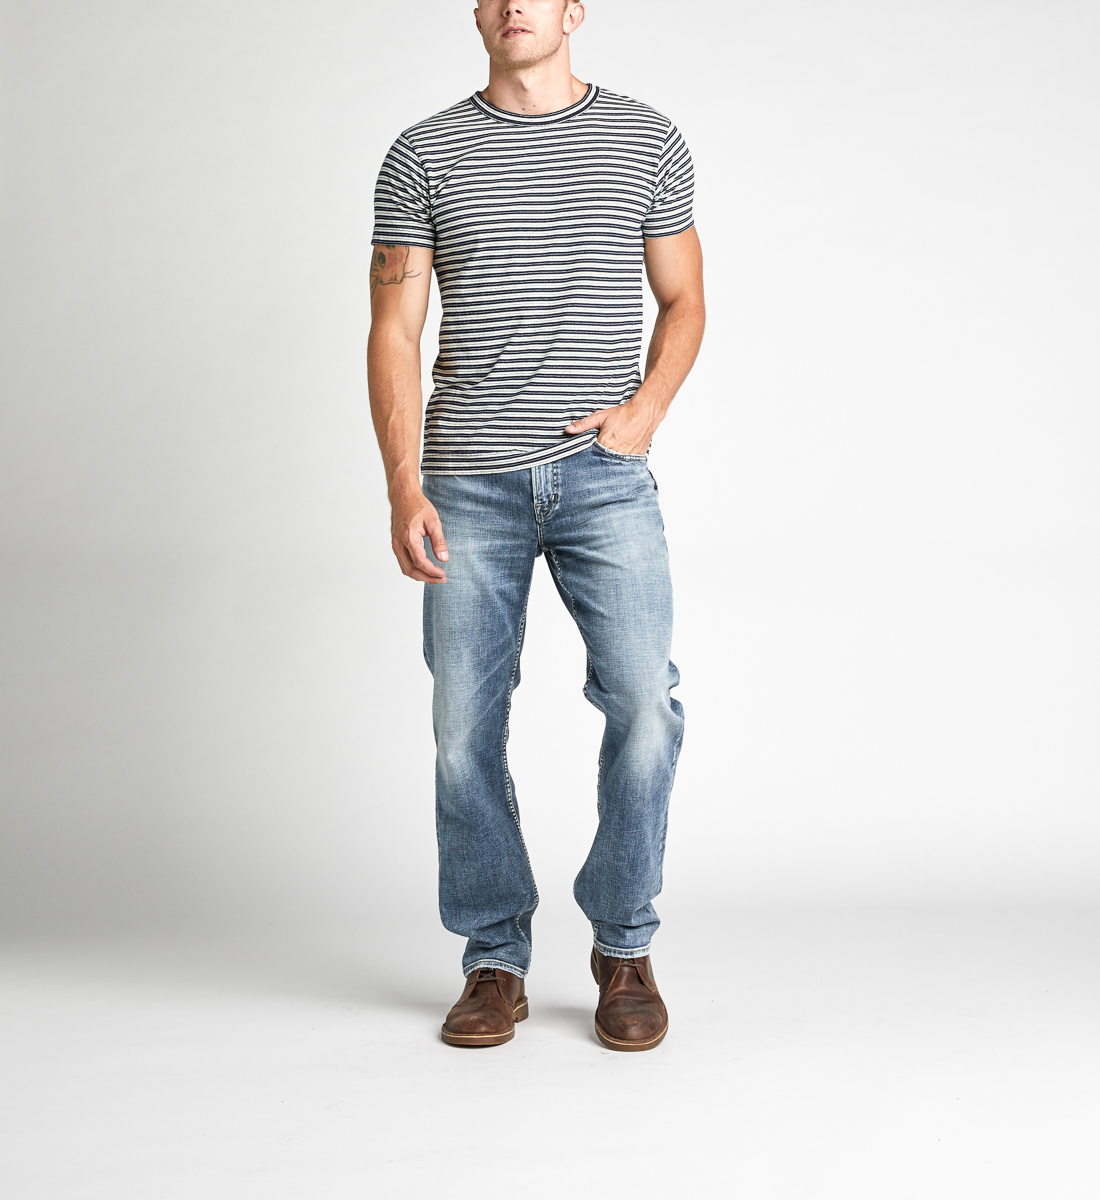 Silver Jeans Grayson Easy Straight Jeans